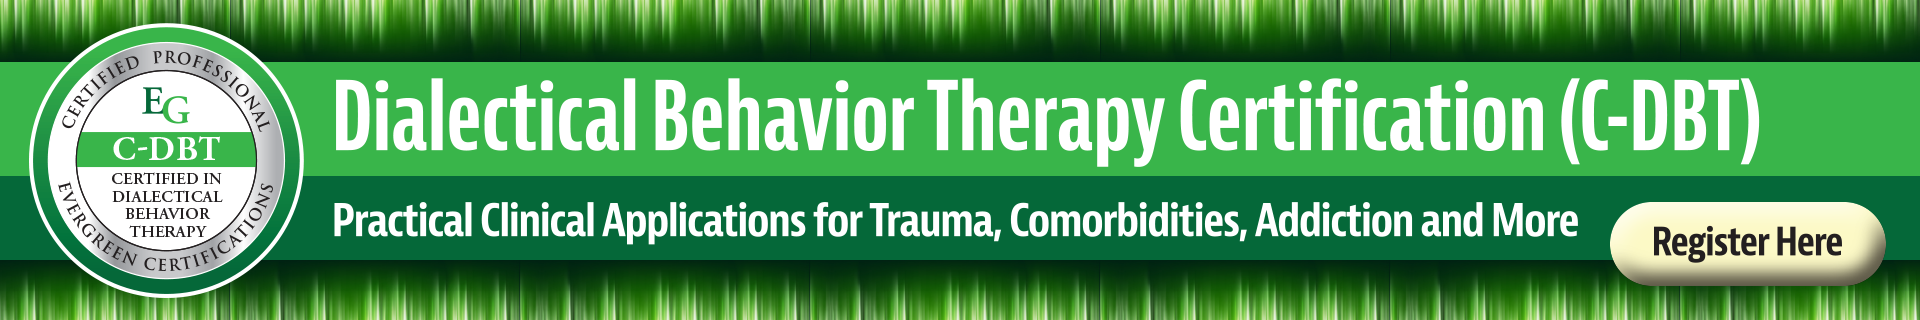 Certified DBT training for therapists, counselors, social workers and more